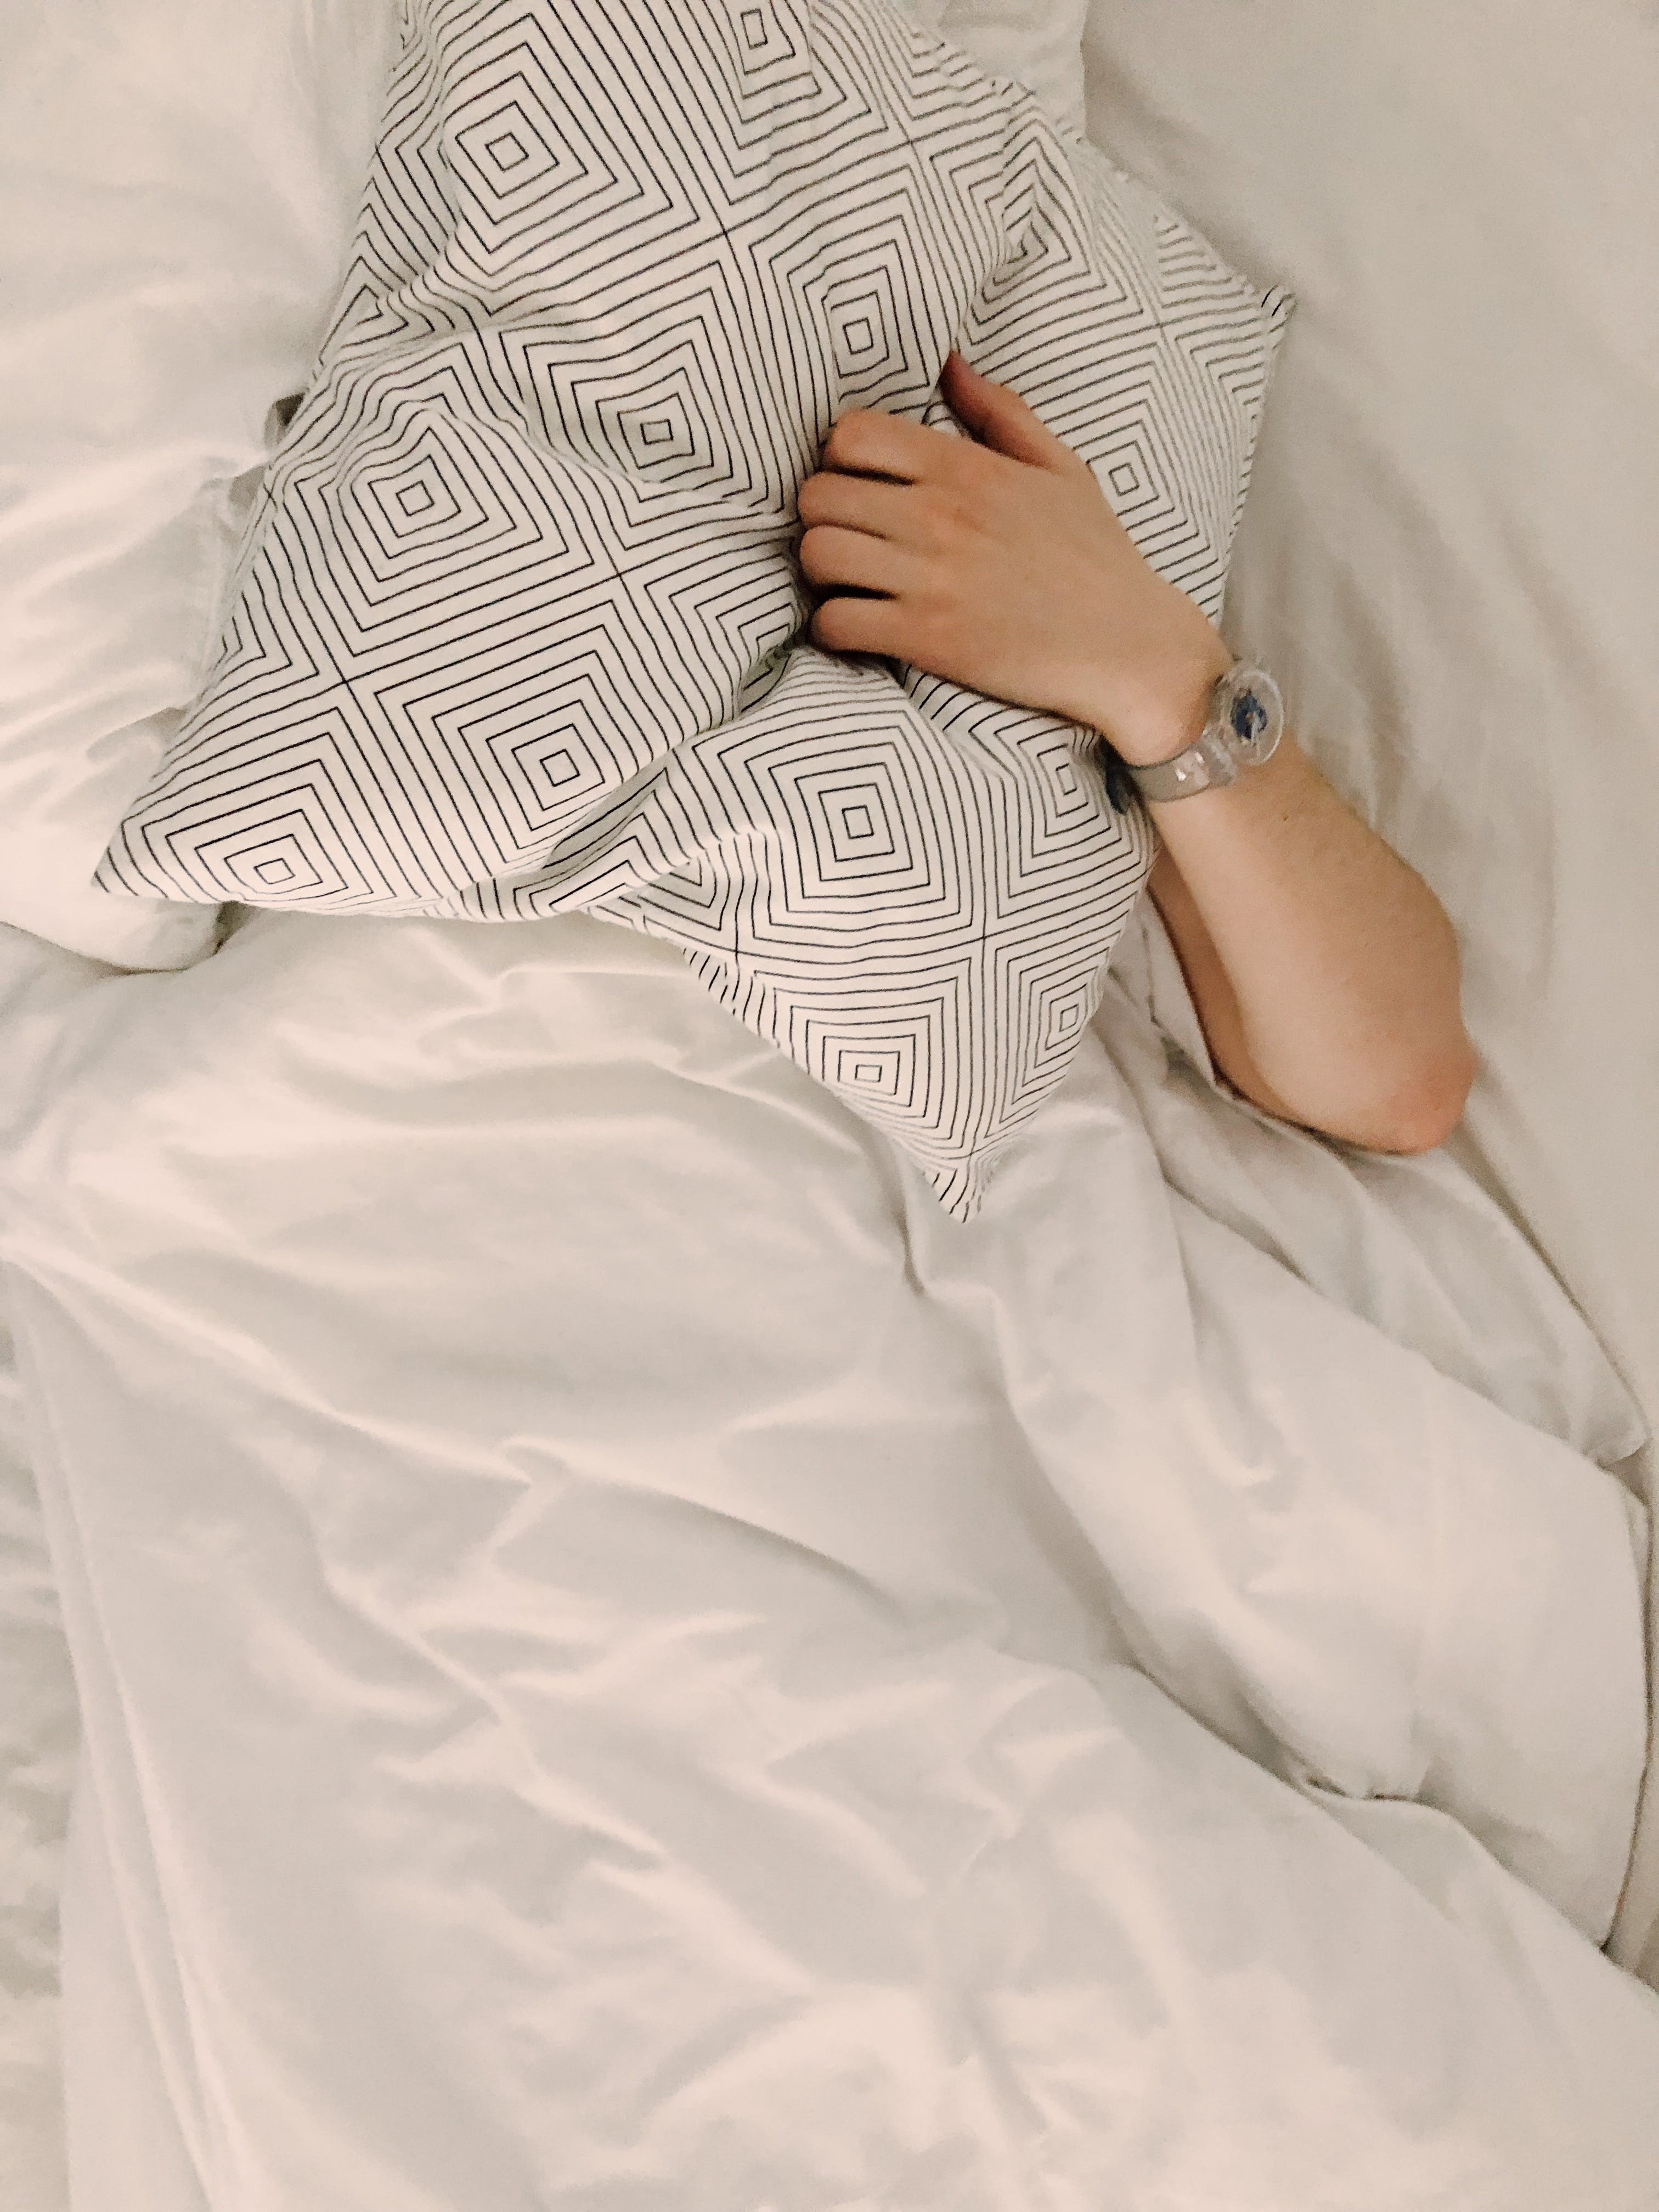 Person Holding Gray and White Throw Pillow